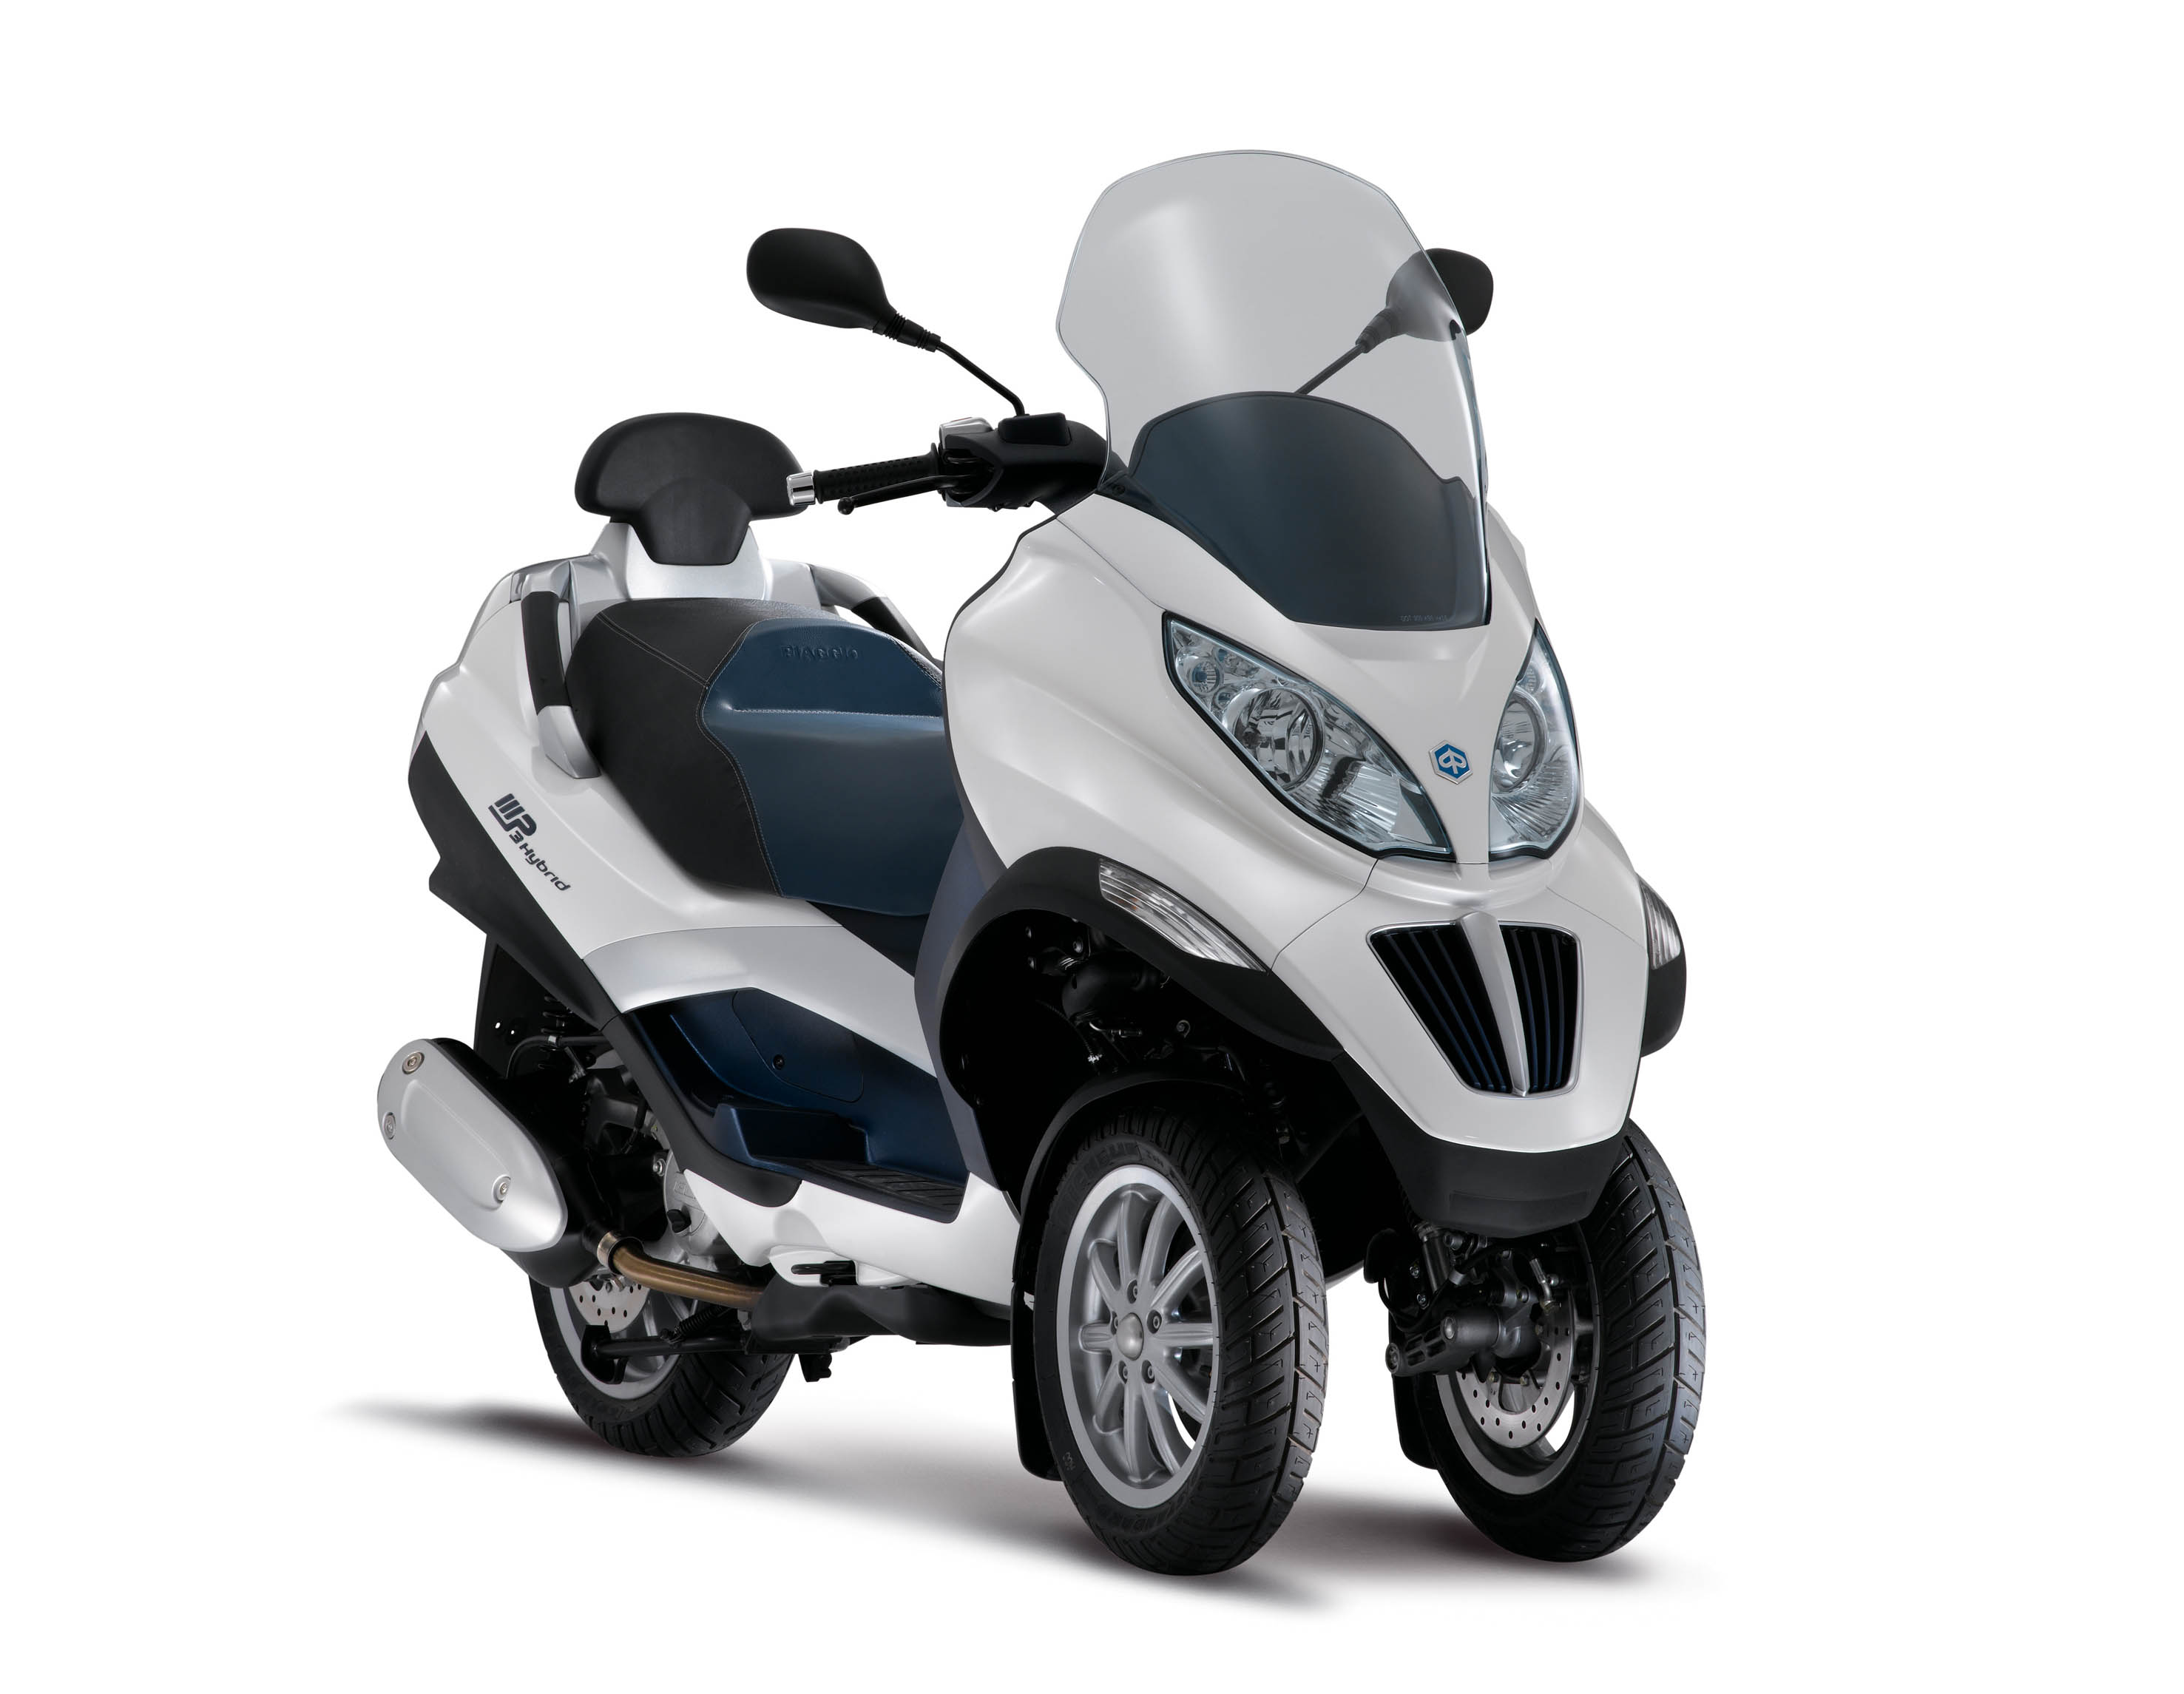 piaggio imports 3 wheeler 125cc mp3 scooter for r d shifting gears. Black Bedroom Furniture Sets. Home Design Ideas